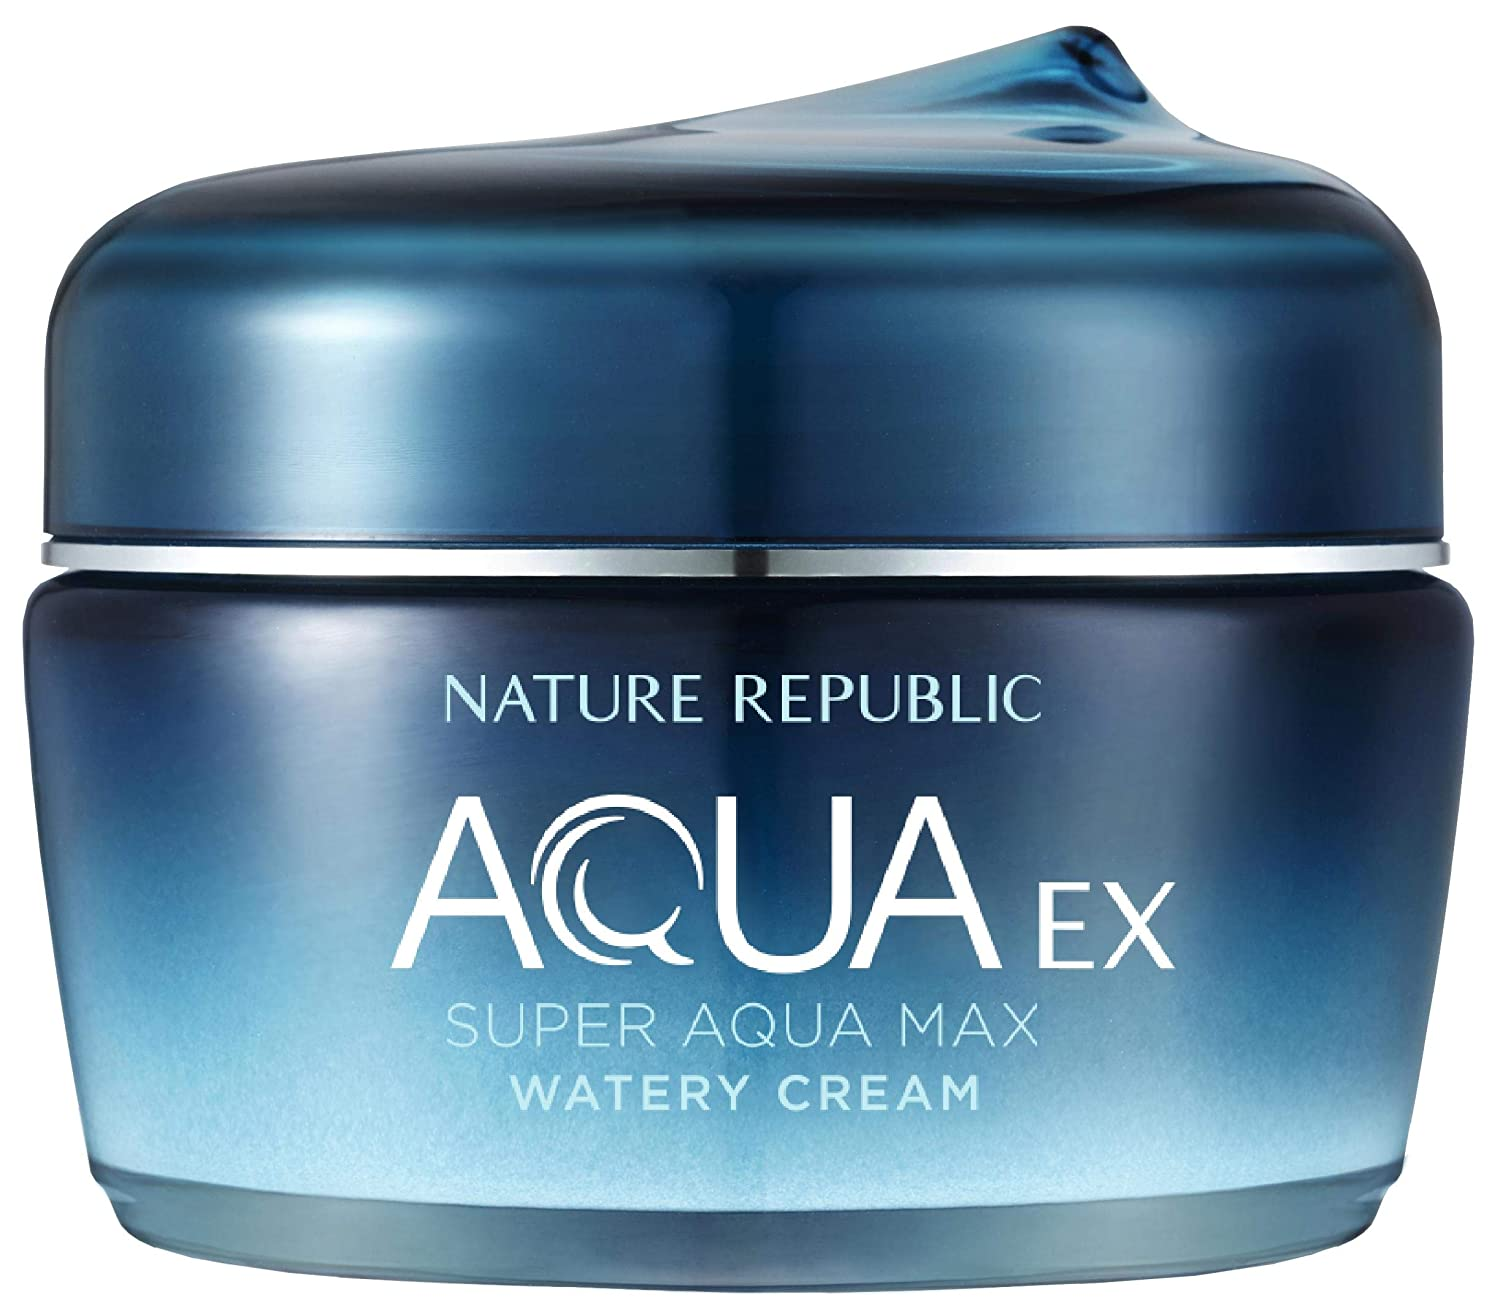 Nature Republic Super Aqua Max Ex Watery Cream - Moisturizing Cream with ocean ingredients, Extra Nourishing & Hydrating, Natural Skin Care, Brightening, Skin Improvement (80 ml/2.70 Fl Oz)